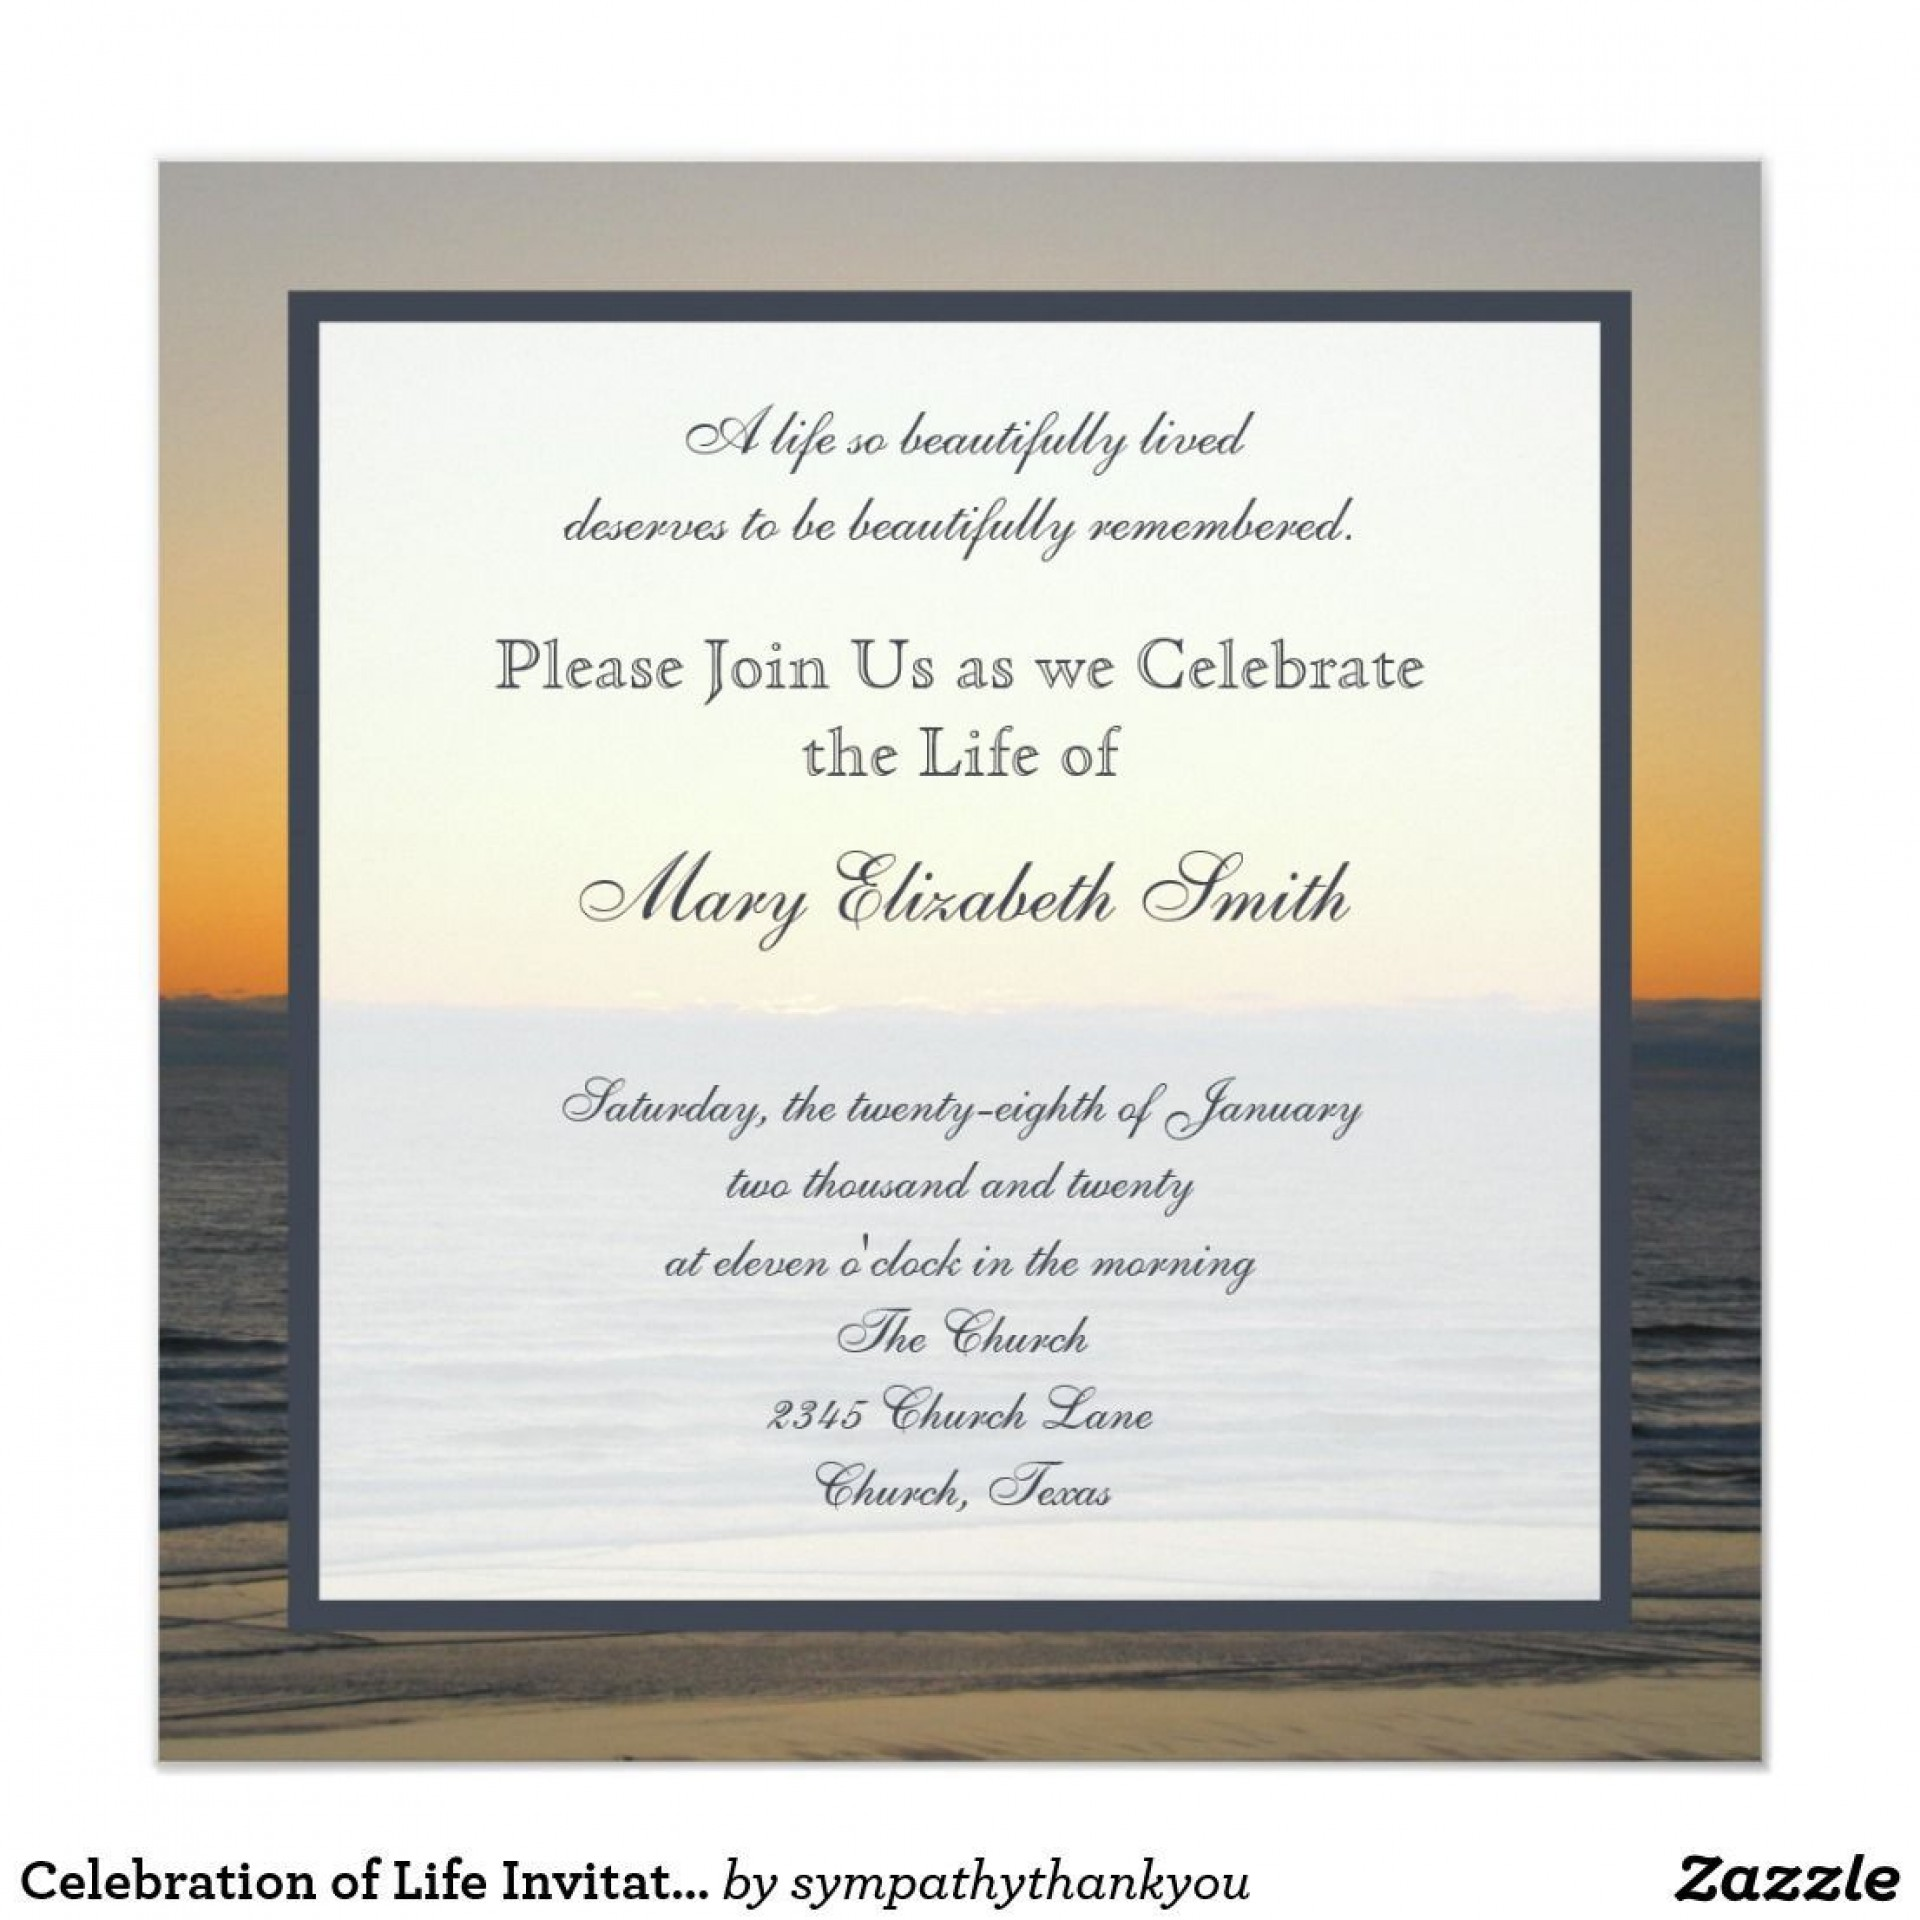 004 Amazing Celebration Of Life Invite Template Free Example  Invitation Download1920